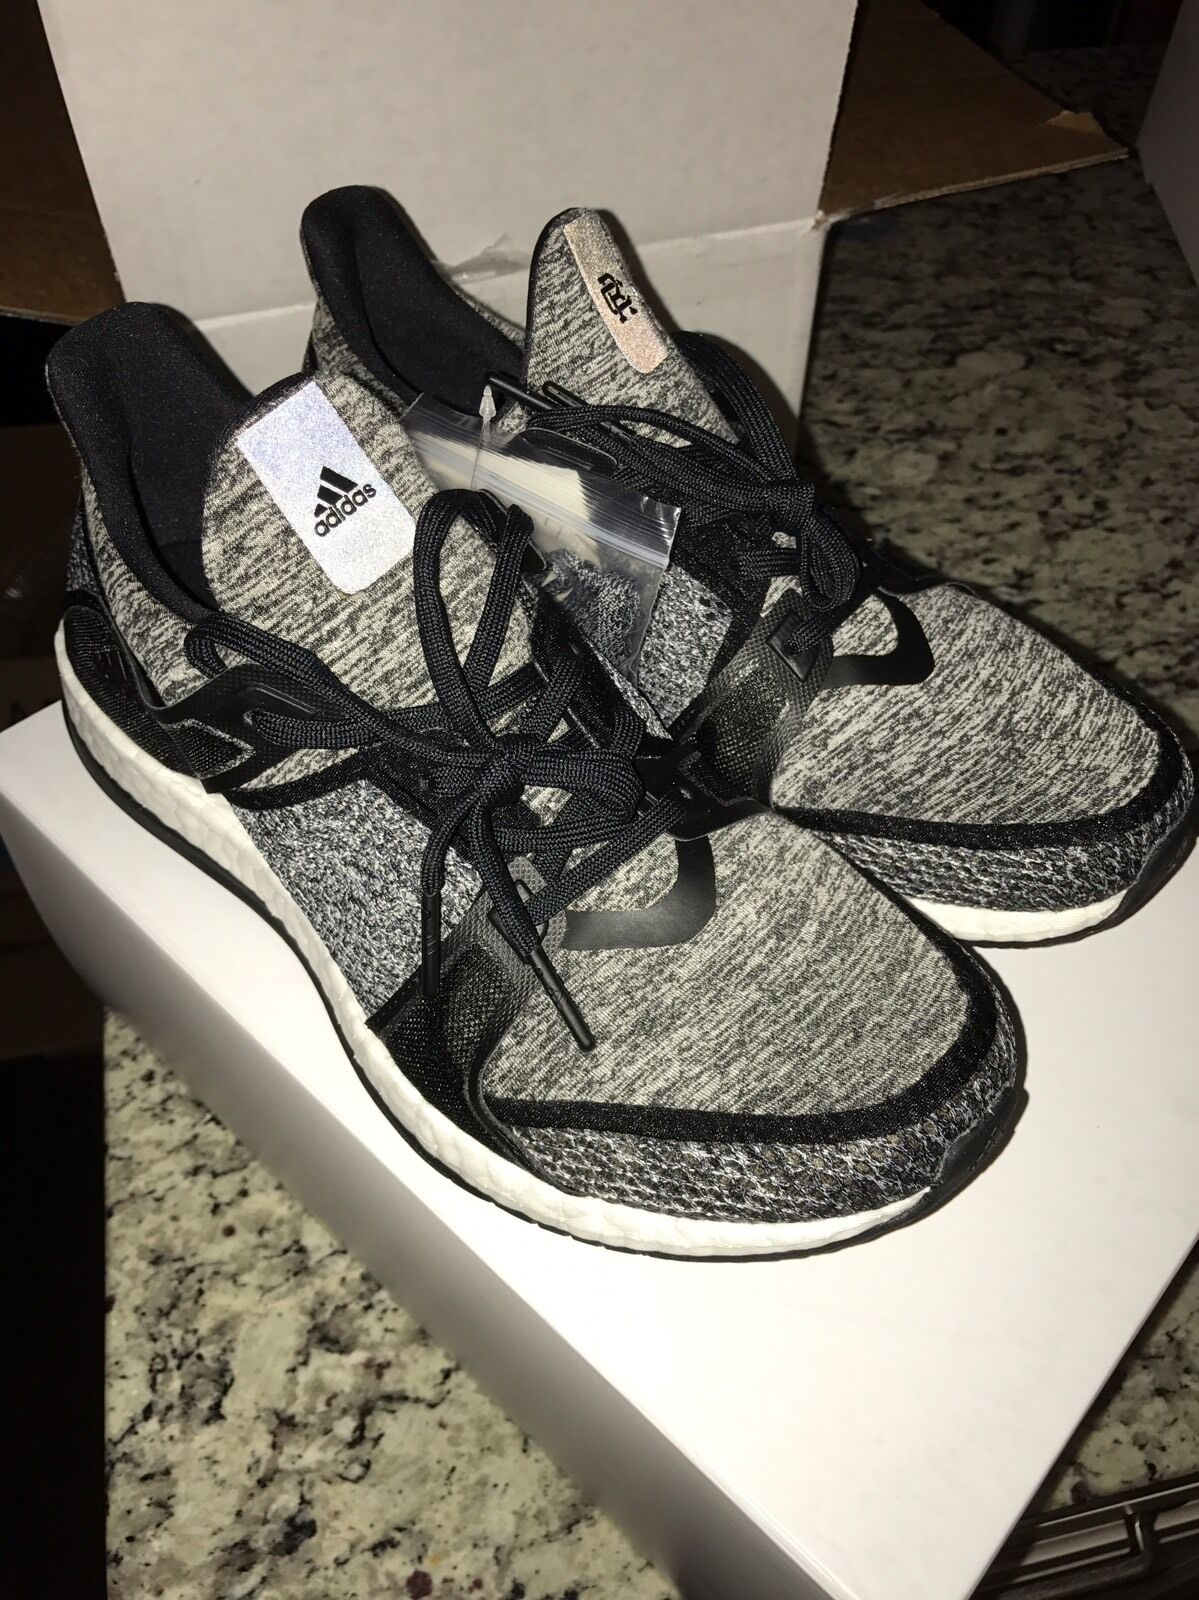 Adidas x Reigning Champ Pure Boost Comfortable The latest discount shoes for men and women